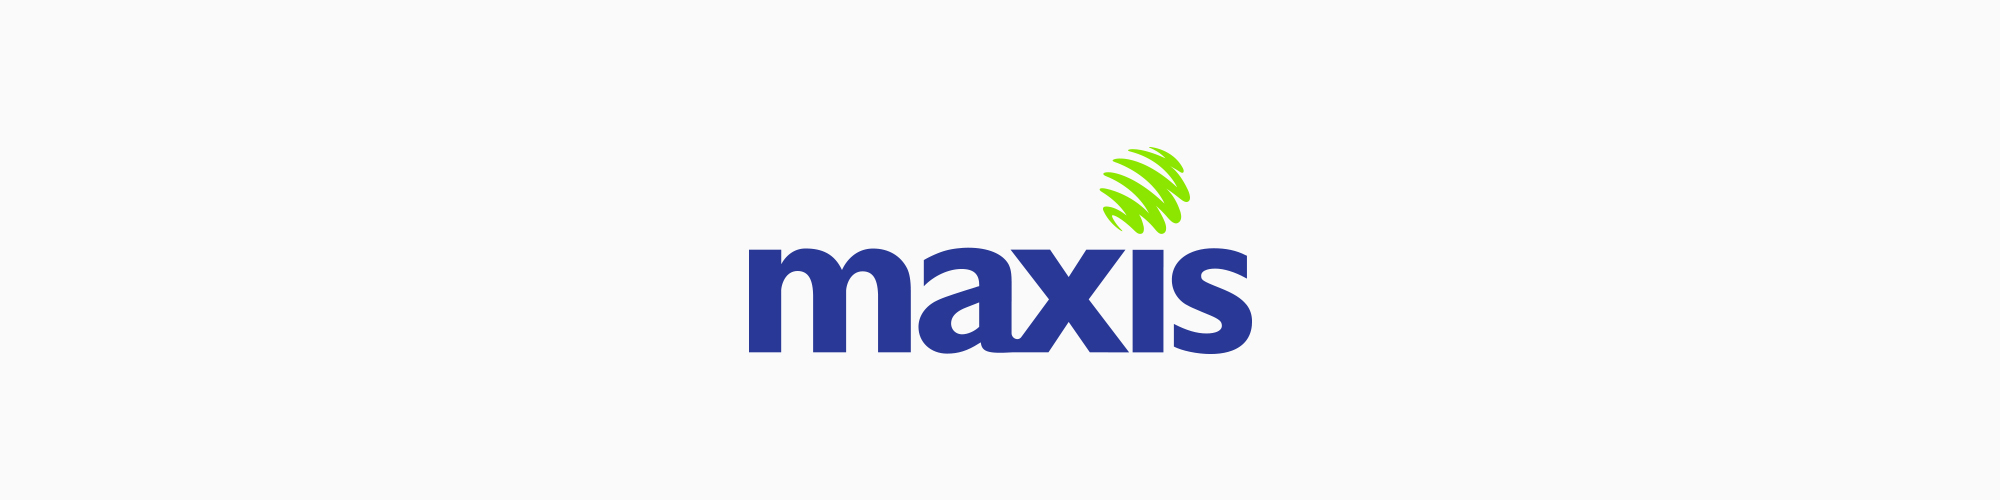 Maxis embarks on a system upgrading exercise to better serve its customers